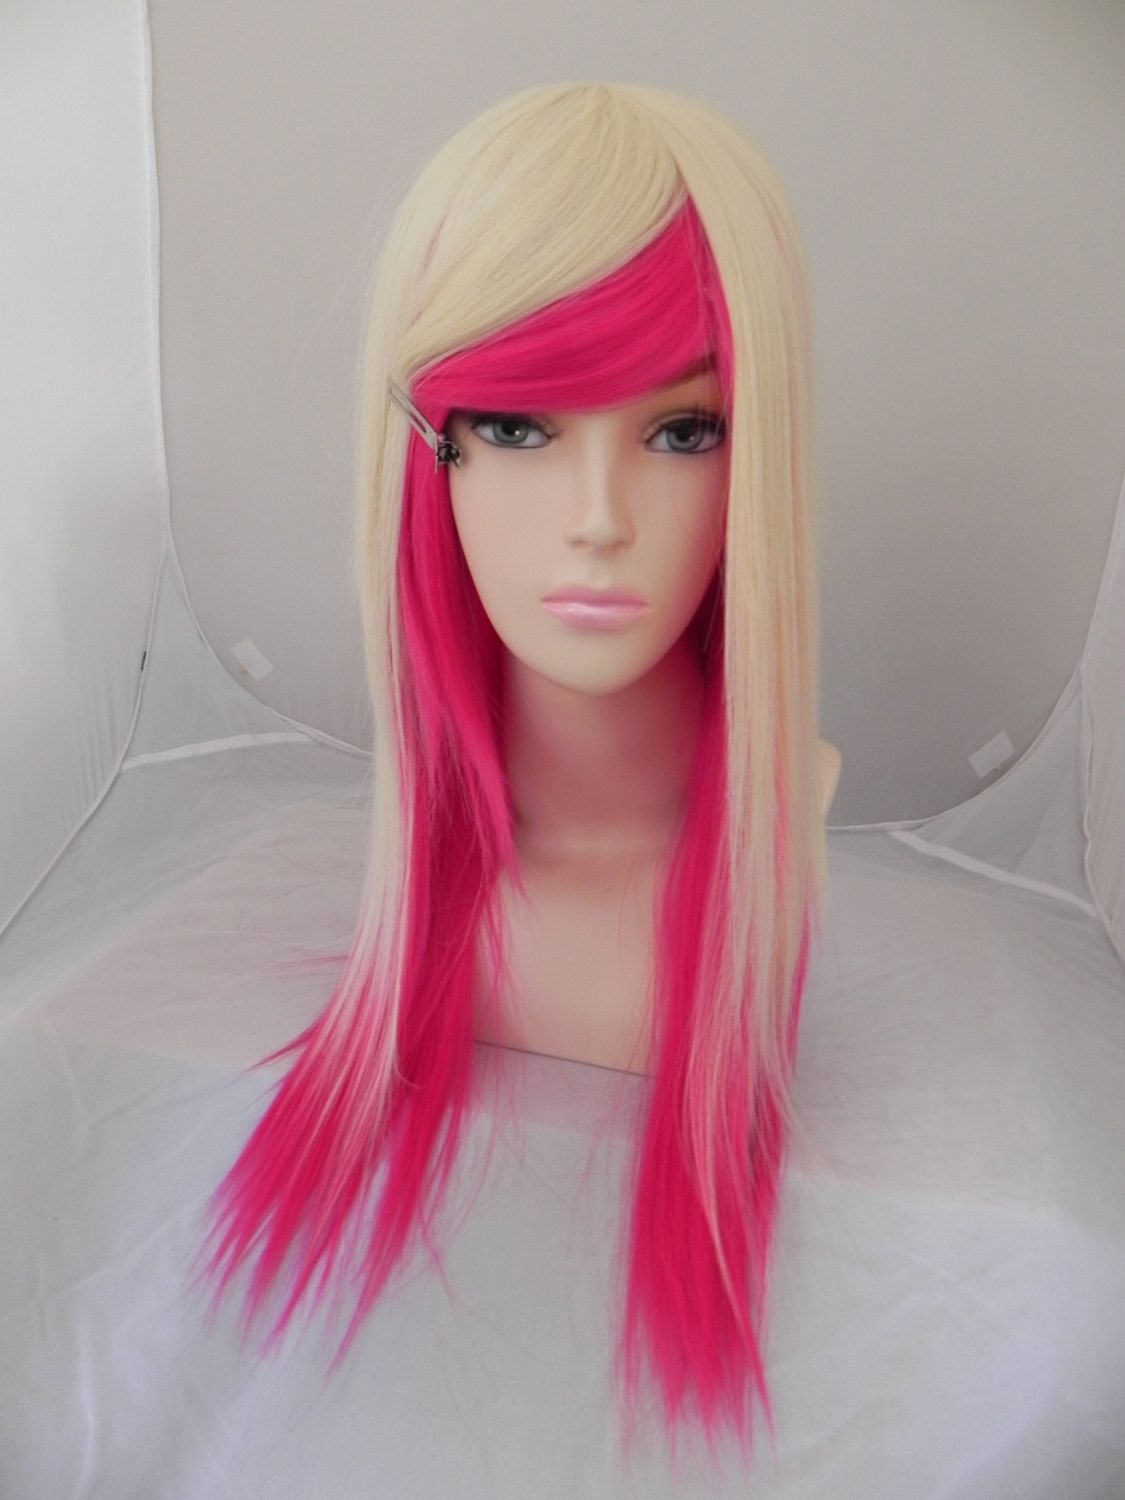 SALE // Hot Pink and Blonde / Long Straight Layered Wig by ExandOh, $114.75